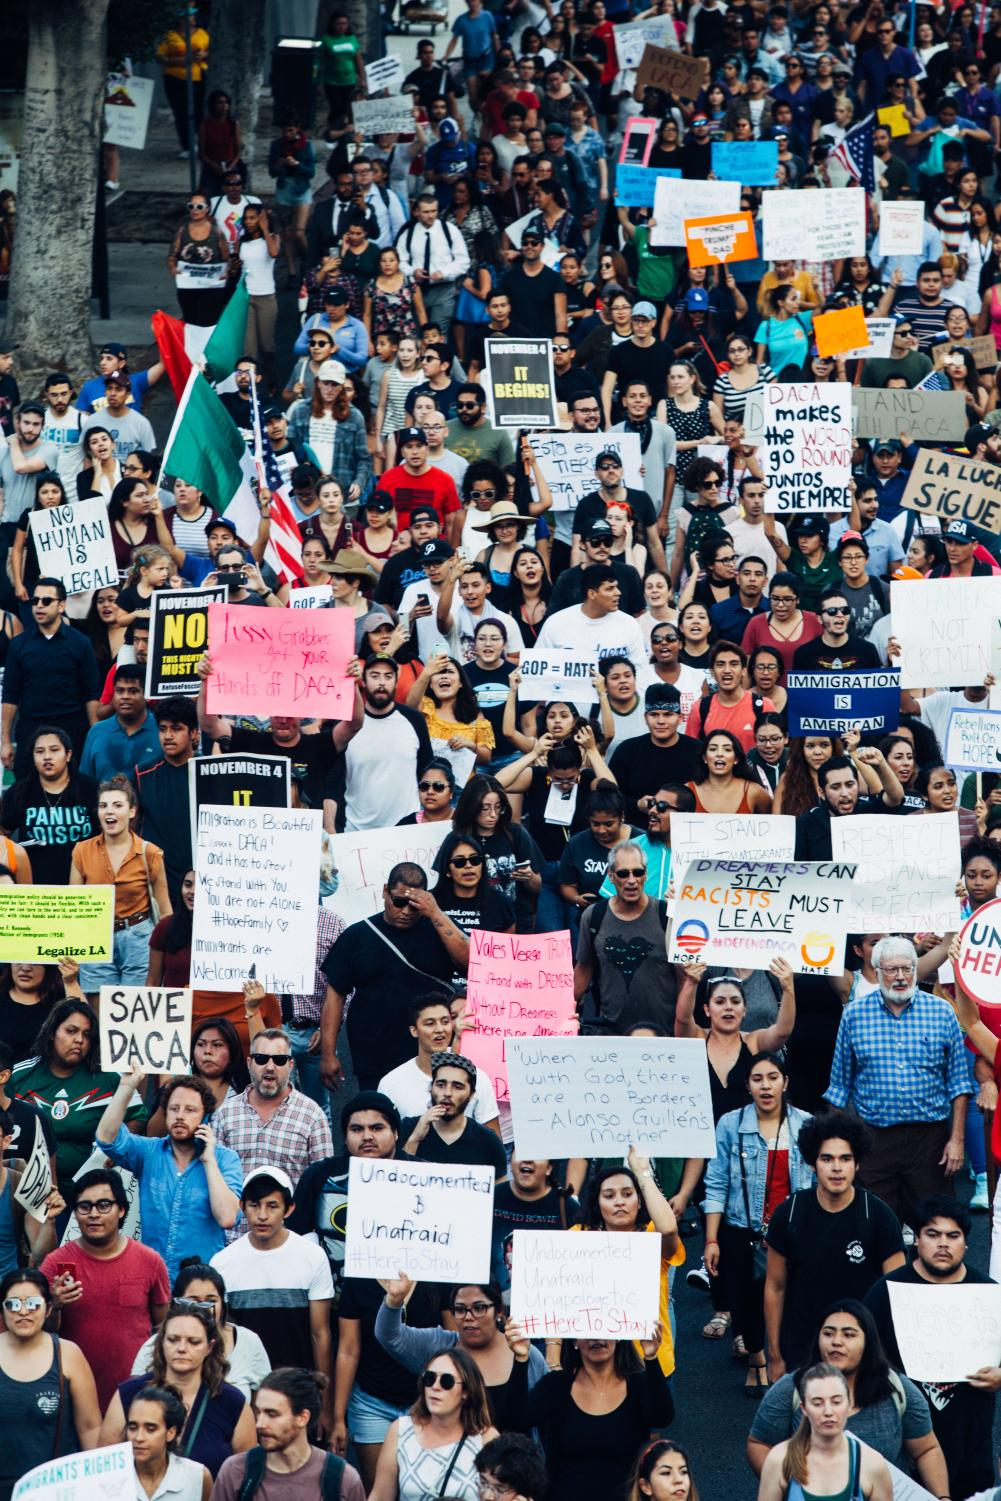 Marchers gather in Los Angeles on Sept. 5 to support immigrants who came to the U.S. illegally as children. AACC has not released any public statements about the issue.